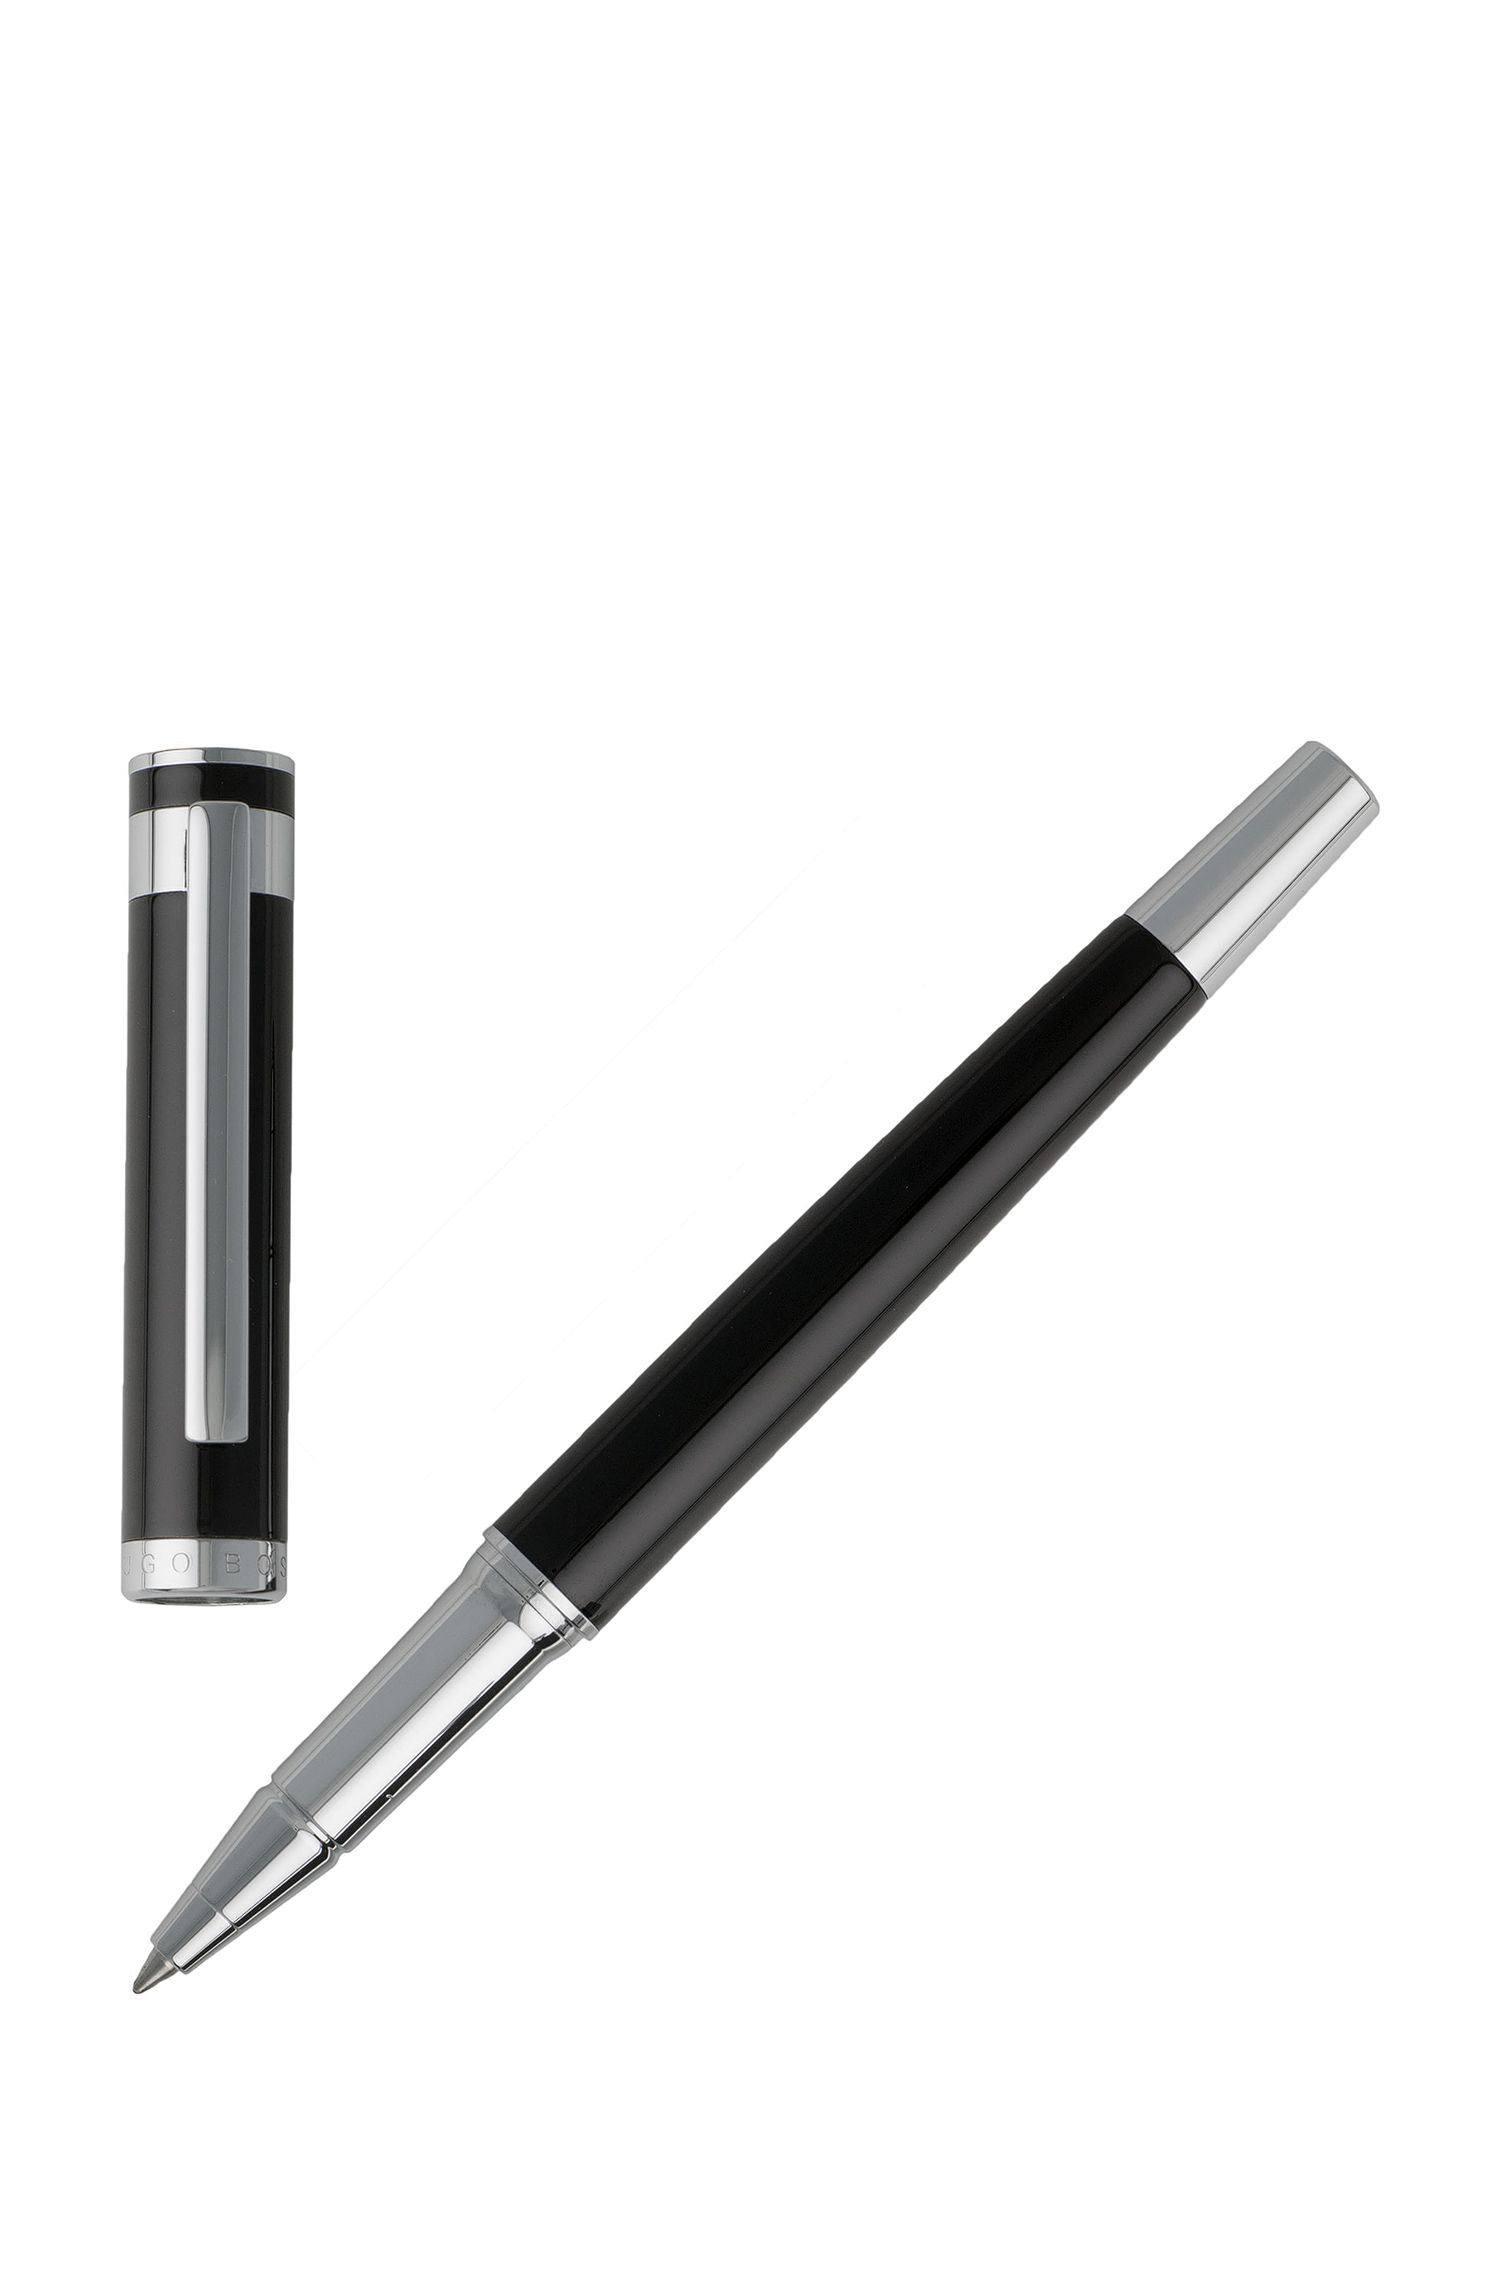 Rollerball pen in glossy black lacquer